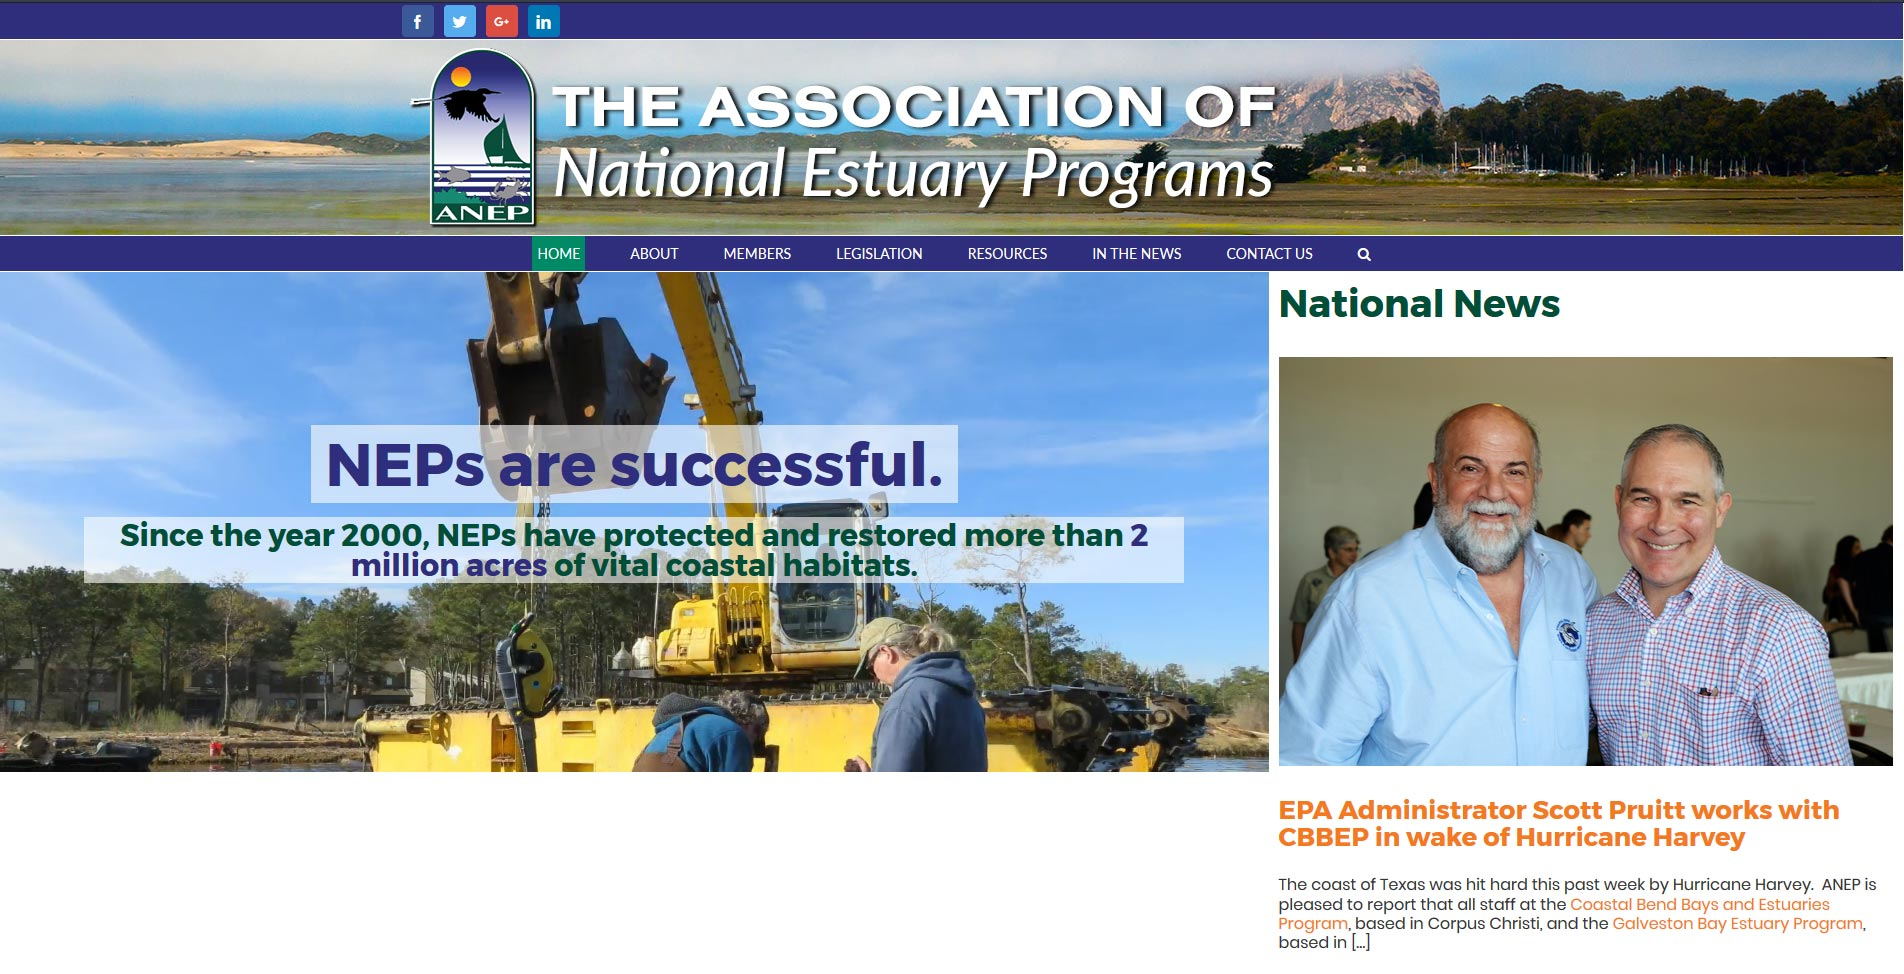 The Association of National Estuary Programs